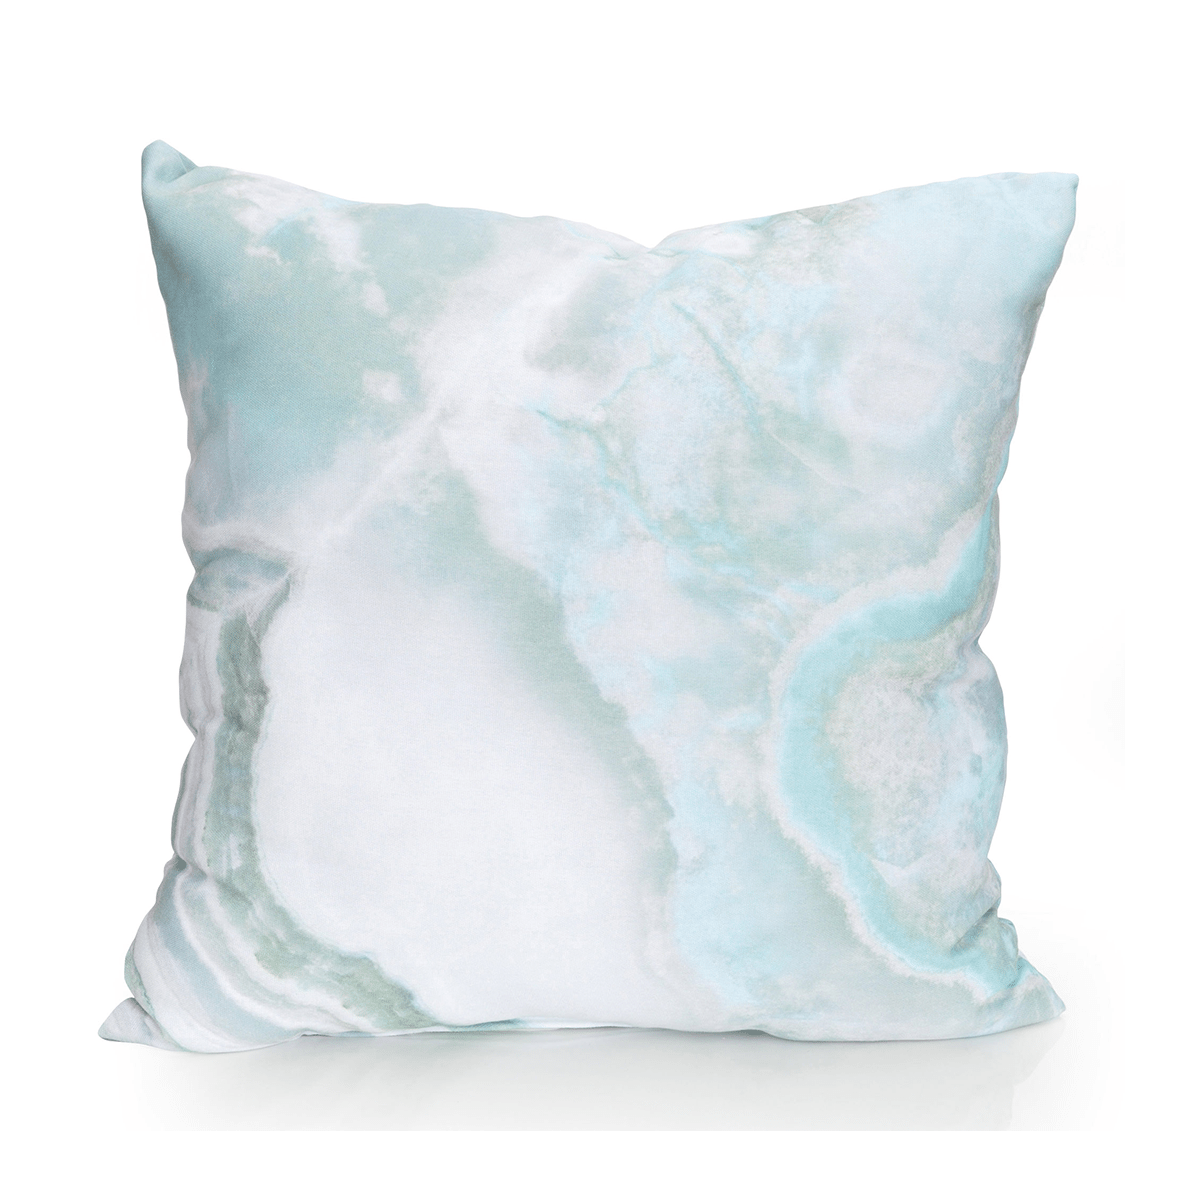 pale-blue-quartz-pillow-shopceladon